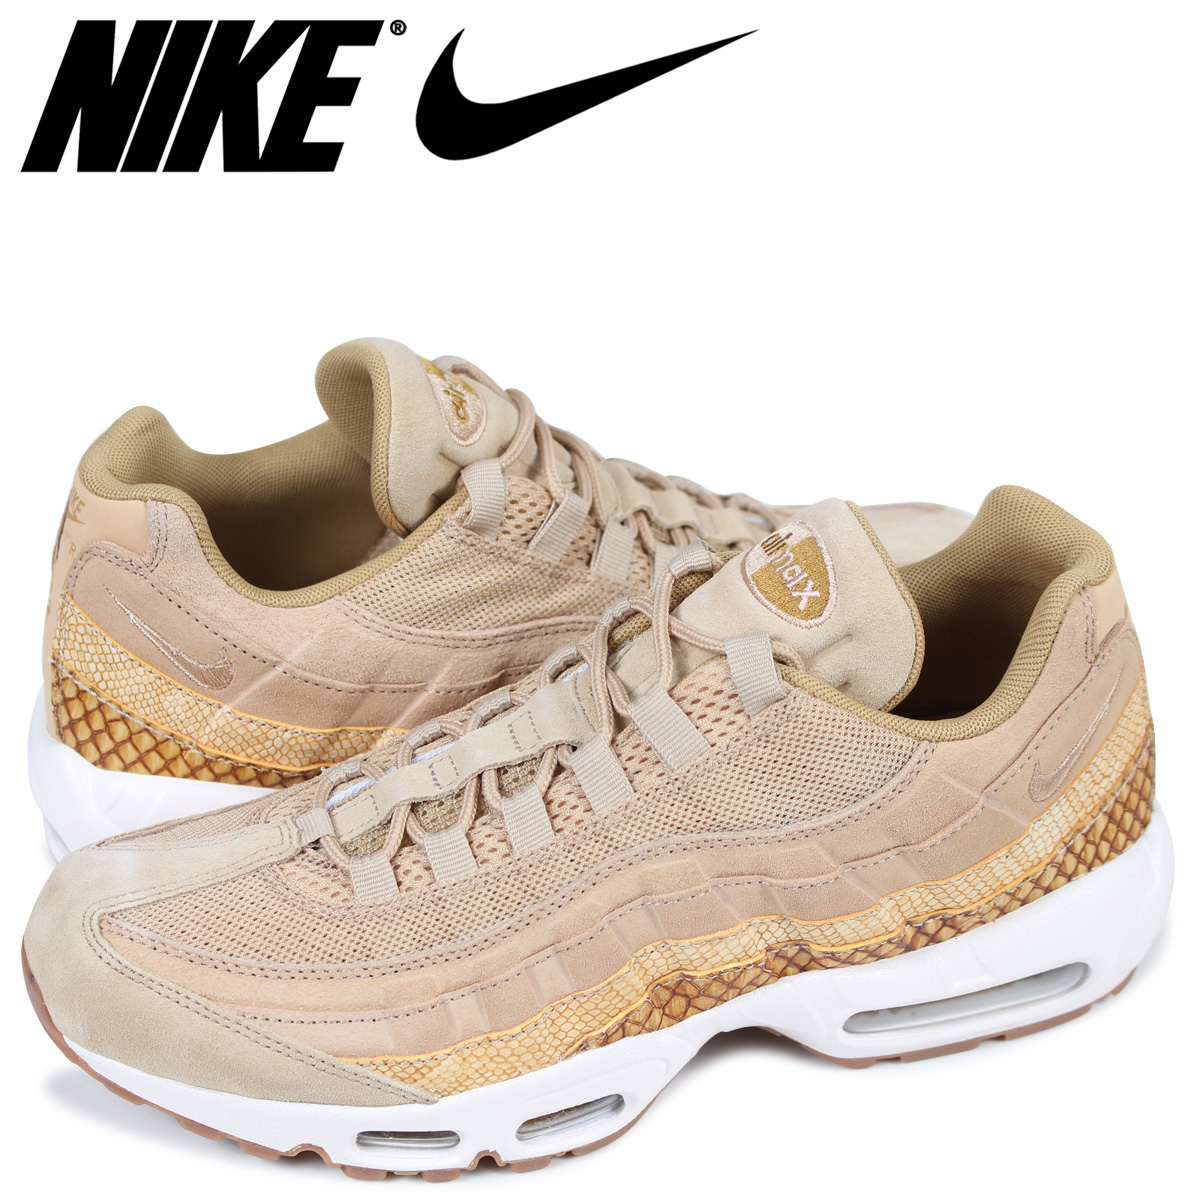 check out 6be3f f2c12 NIKE AIR MAX 95 PREMIUM SE Kie Ney AMAX 95 sneakers men 924,478-201 beige